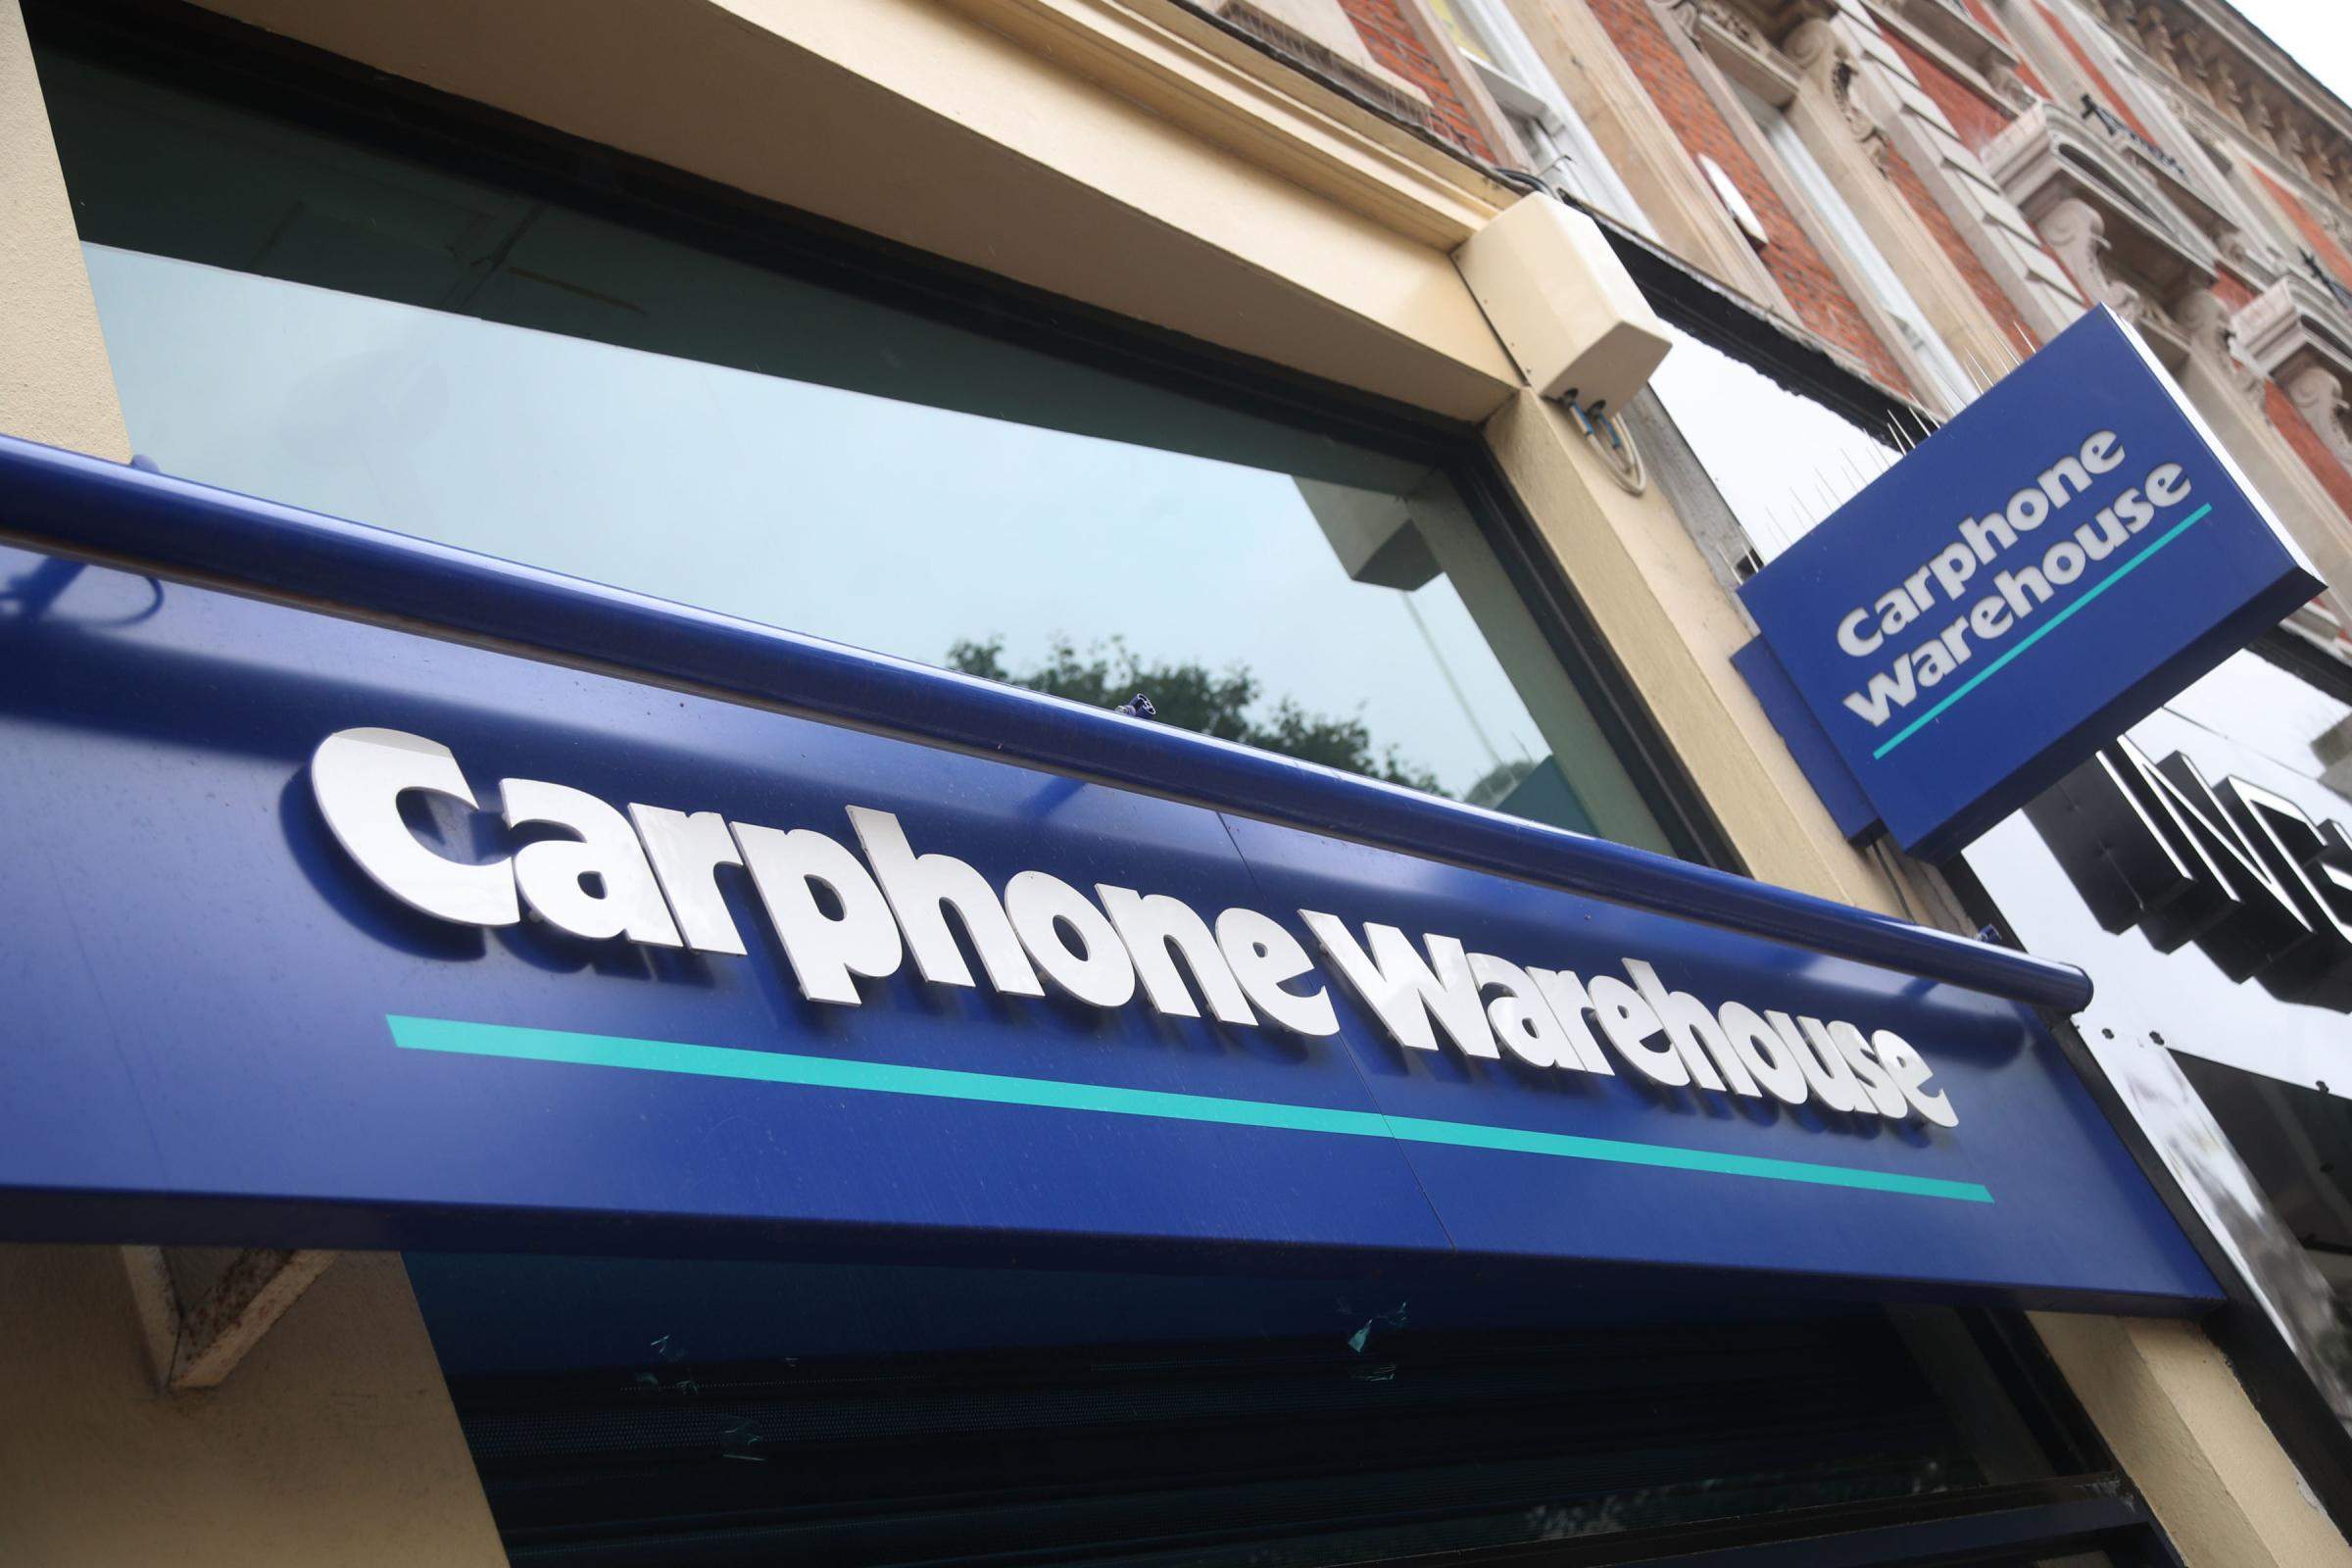 Retailer Dixons Carphone has become the latest victim of a cyber attack after revealing 5.9 million customer bank card details and 1.2 million personal data records were hacked (Yui Mok/PA)